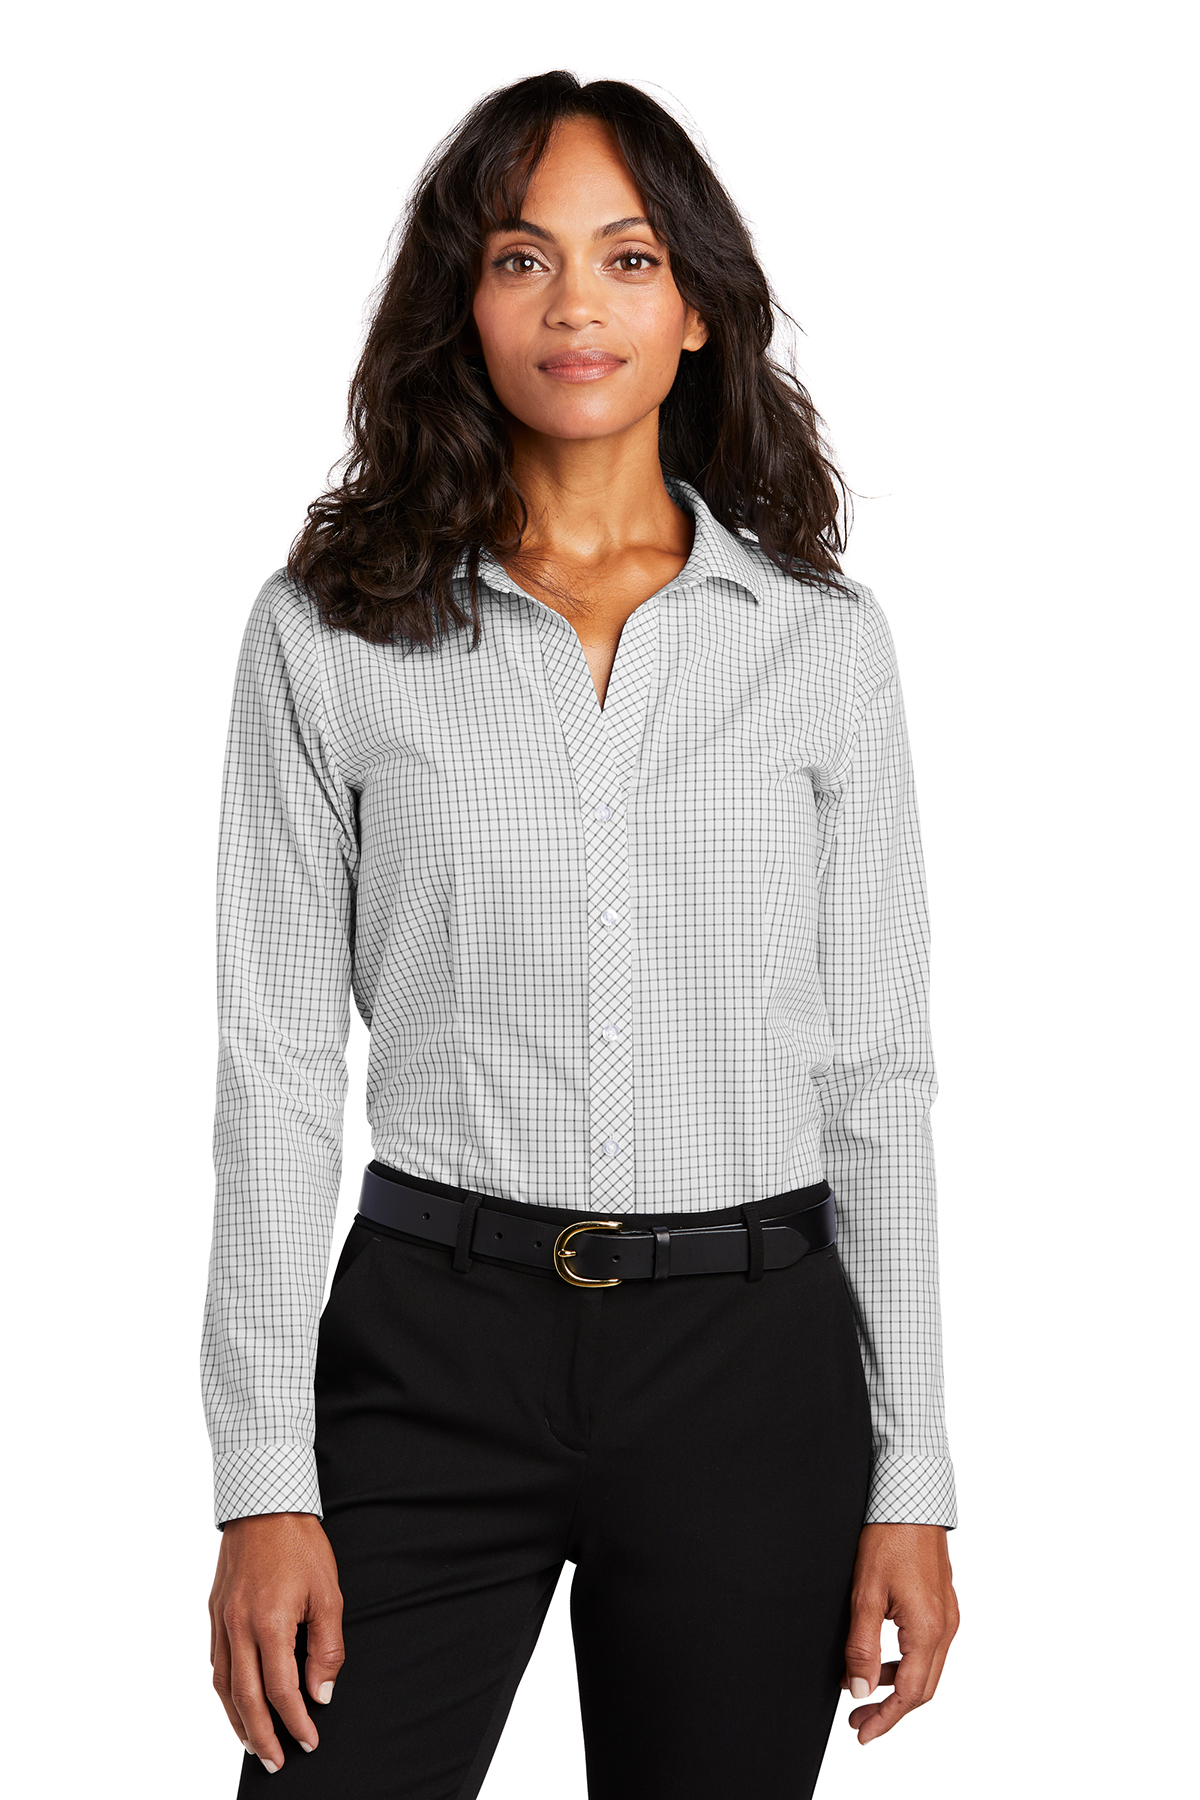 Red House ® RH86 - Ladies Open Ground Check Non-Iron Shirt